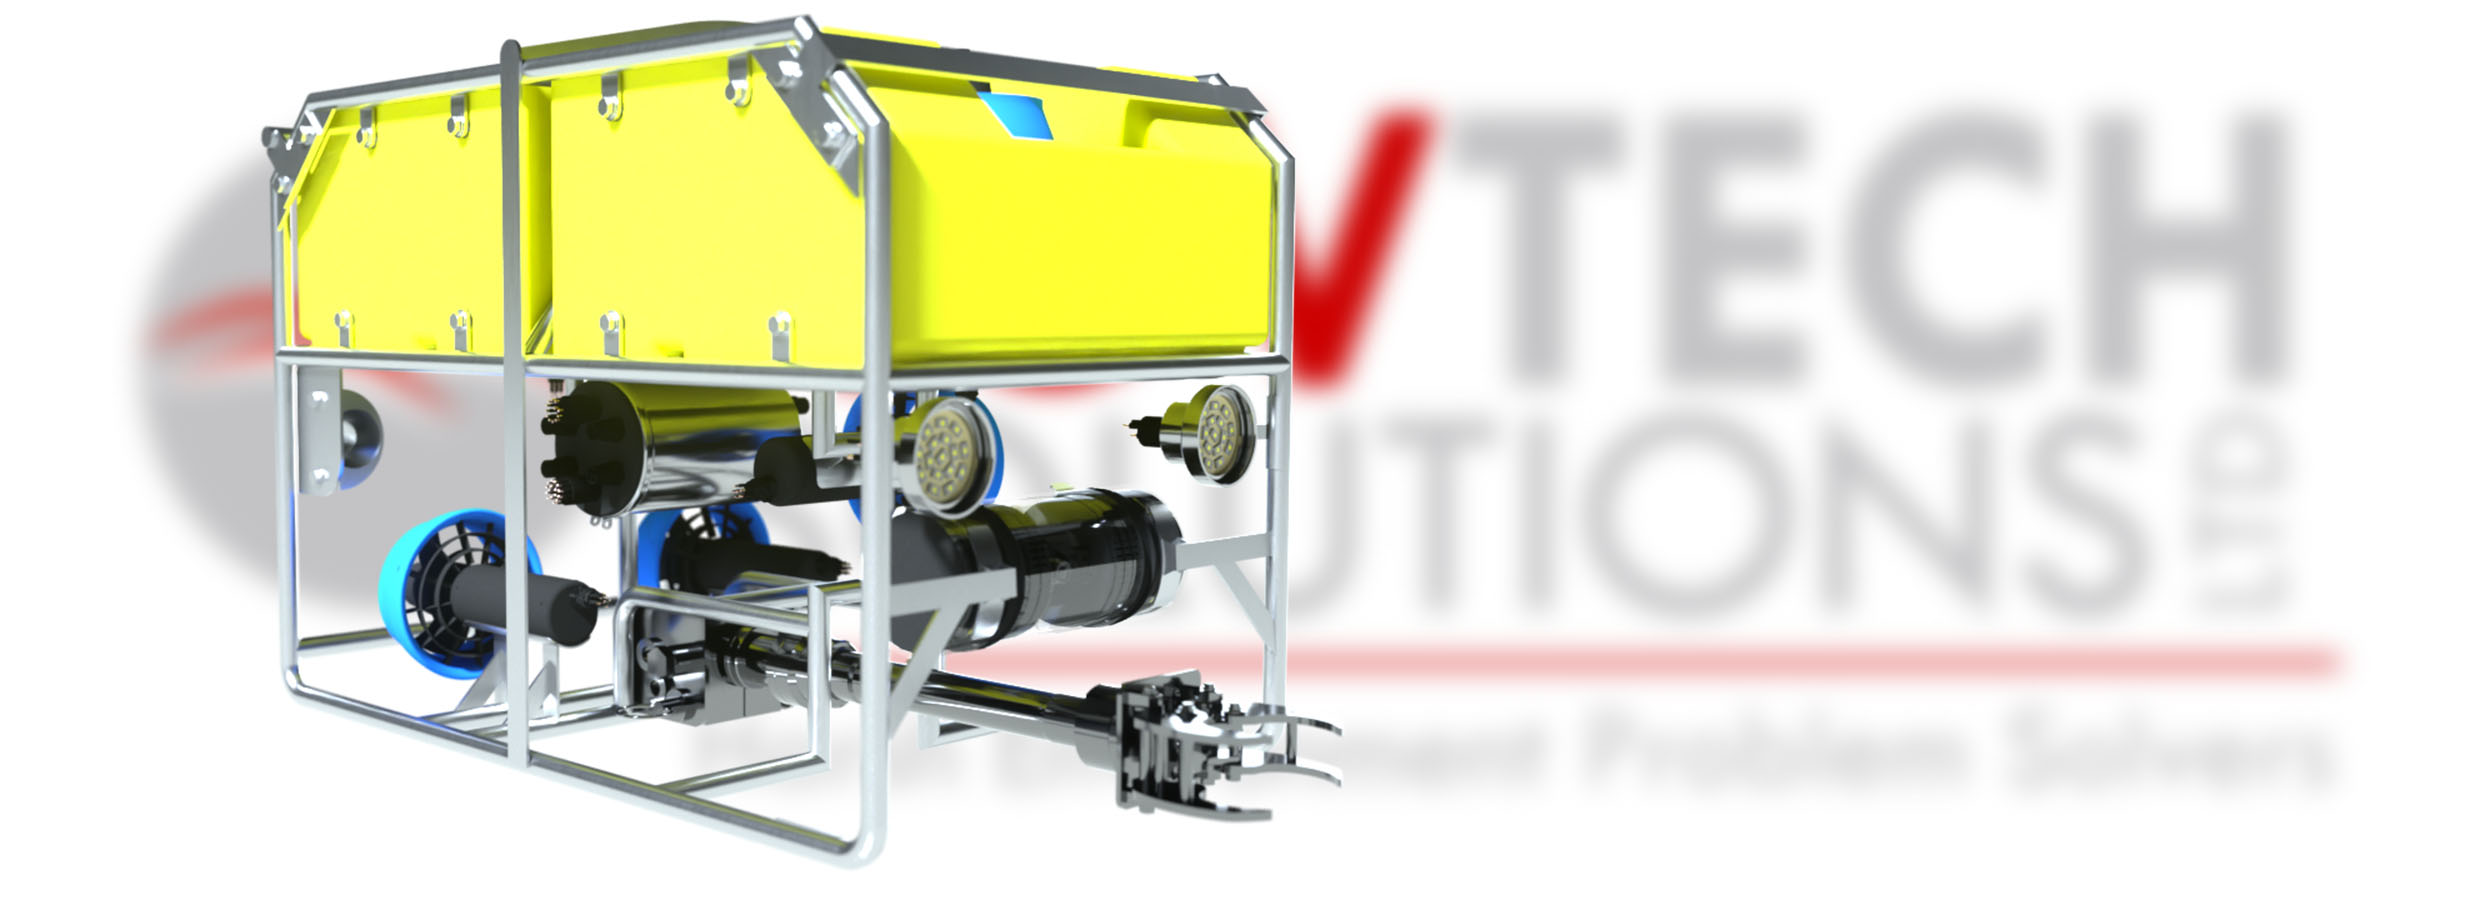 Rovtech Solutions - Remotely Operated Vehicles (ROVs) Product Gallery